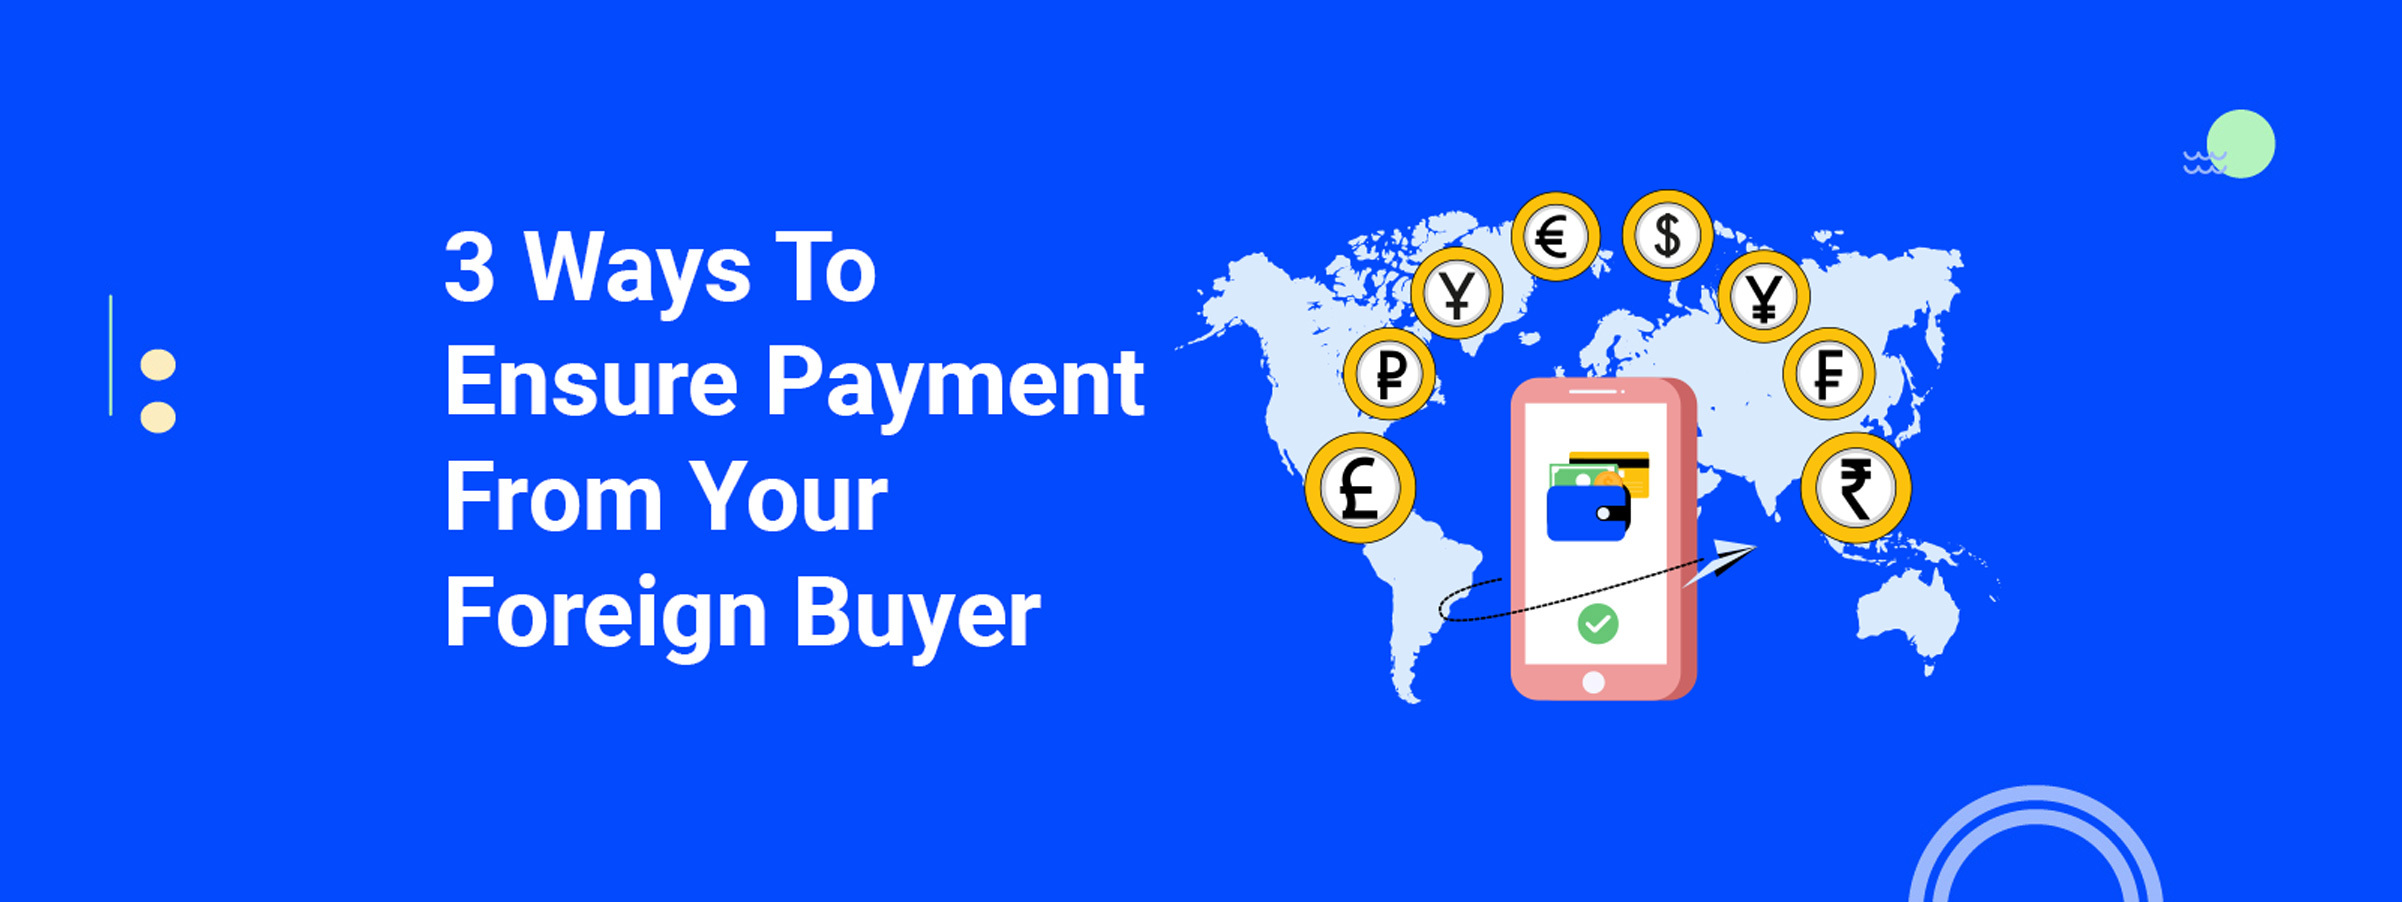 3 Ways To Ensure Payment From Your Foreign Buyer